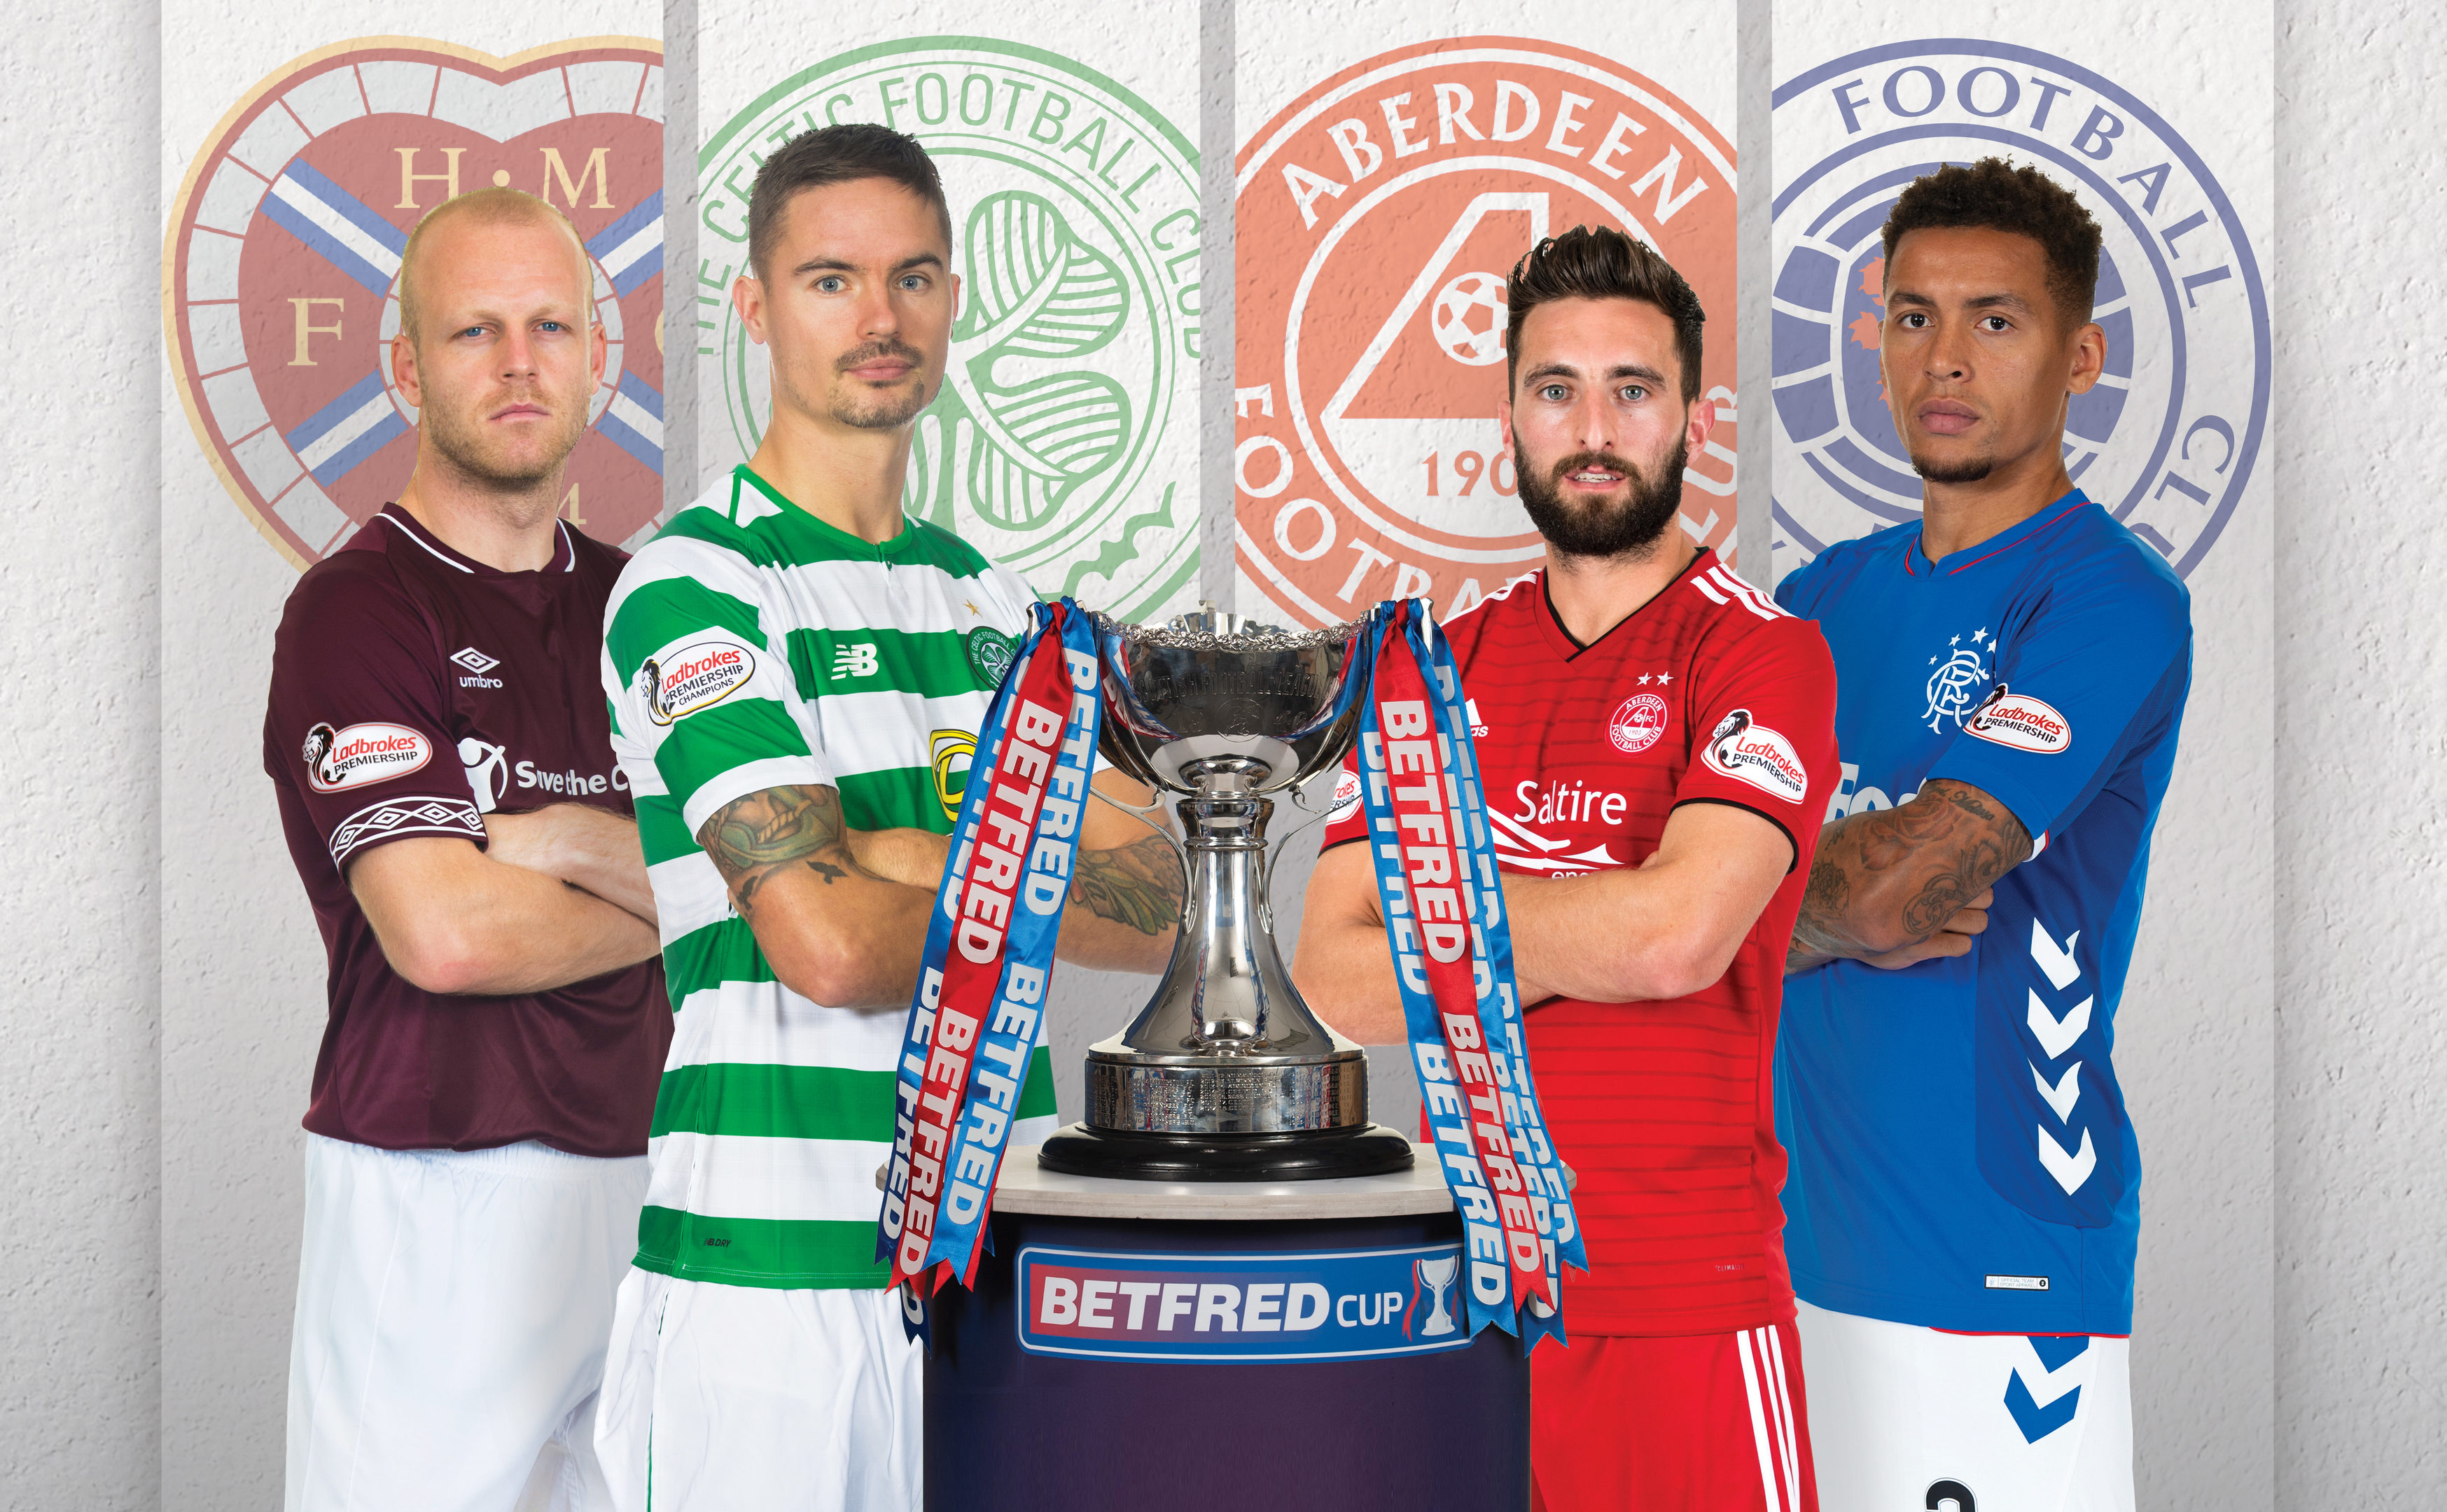 The semi-final captains – Hearts' Steven Naismith, Mikael Lustig of Celtic, Aberdeen's Graeme Shinnie and James Tavernier of Rangers (SNS Group)